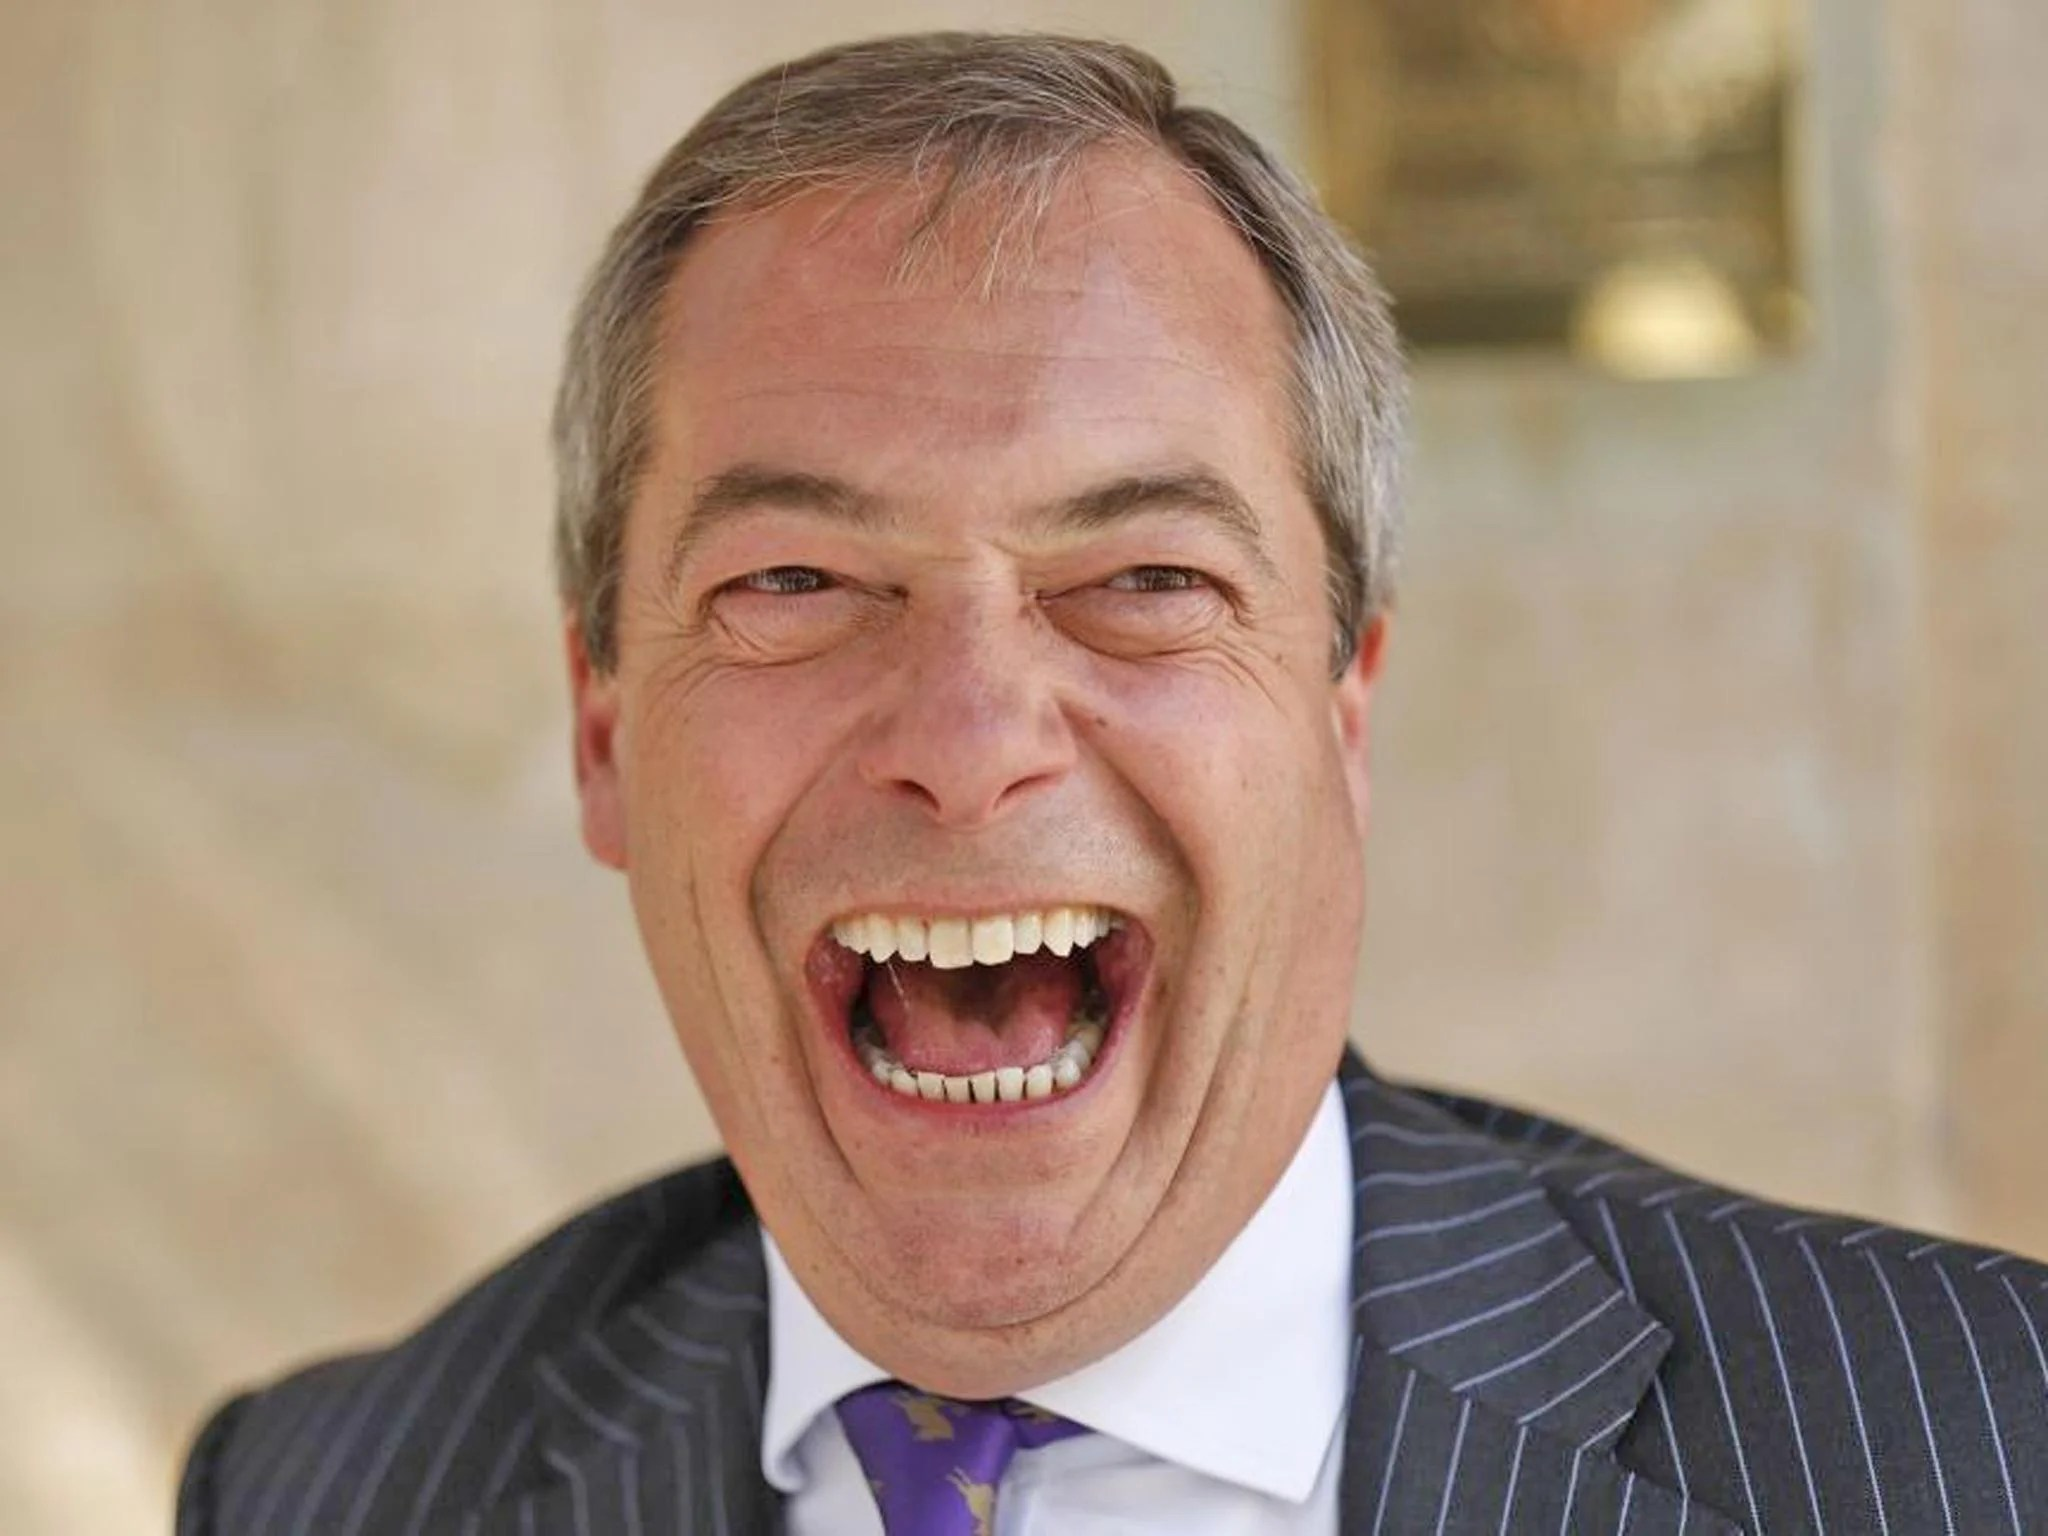 Who39s laughing now Nigel Farage forces Ukip into the